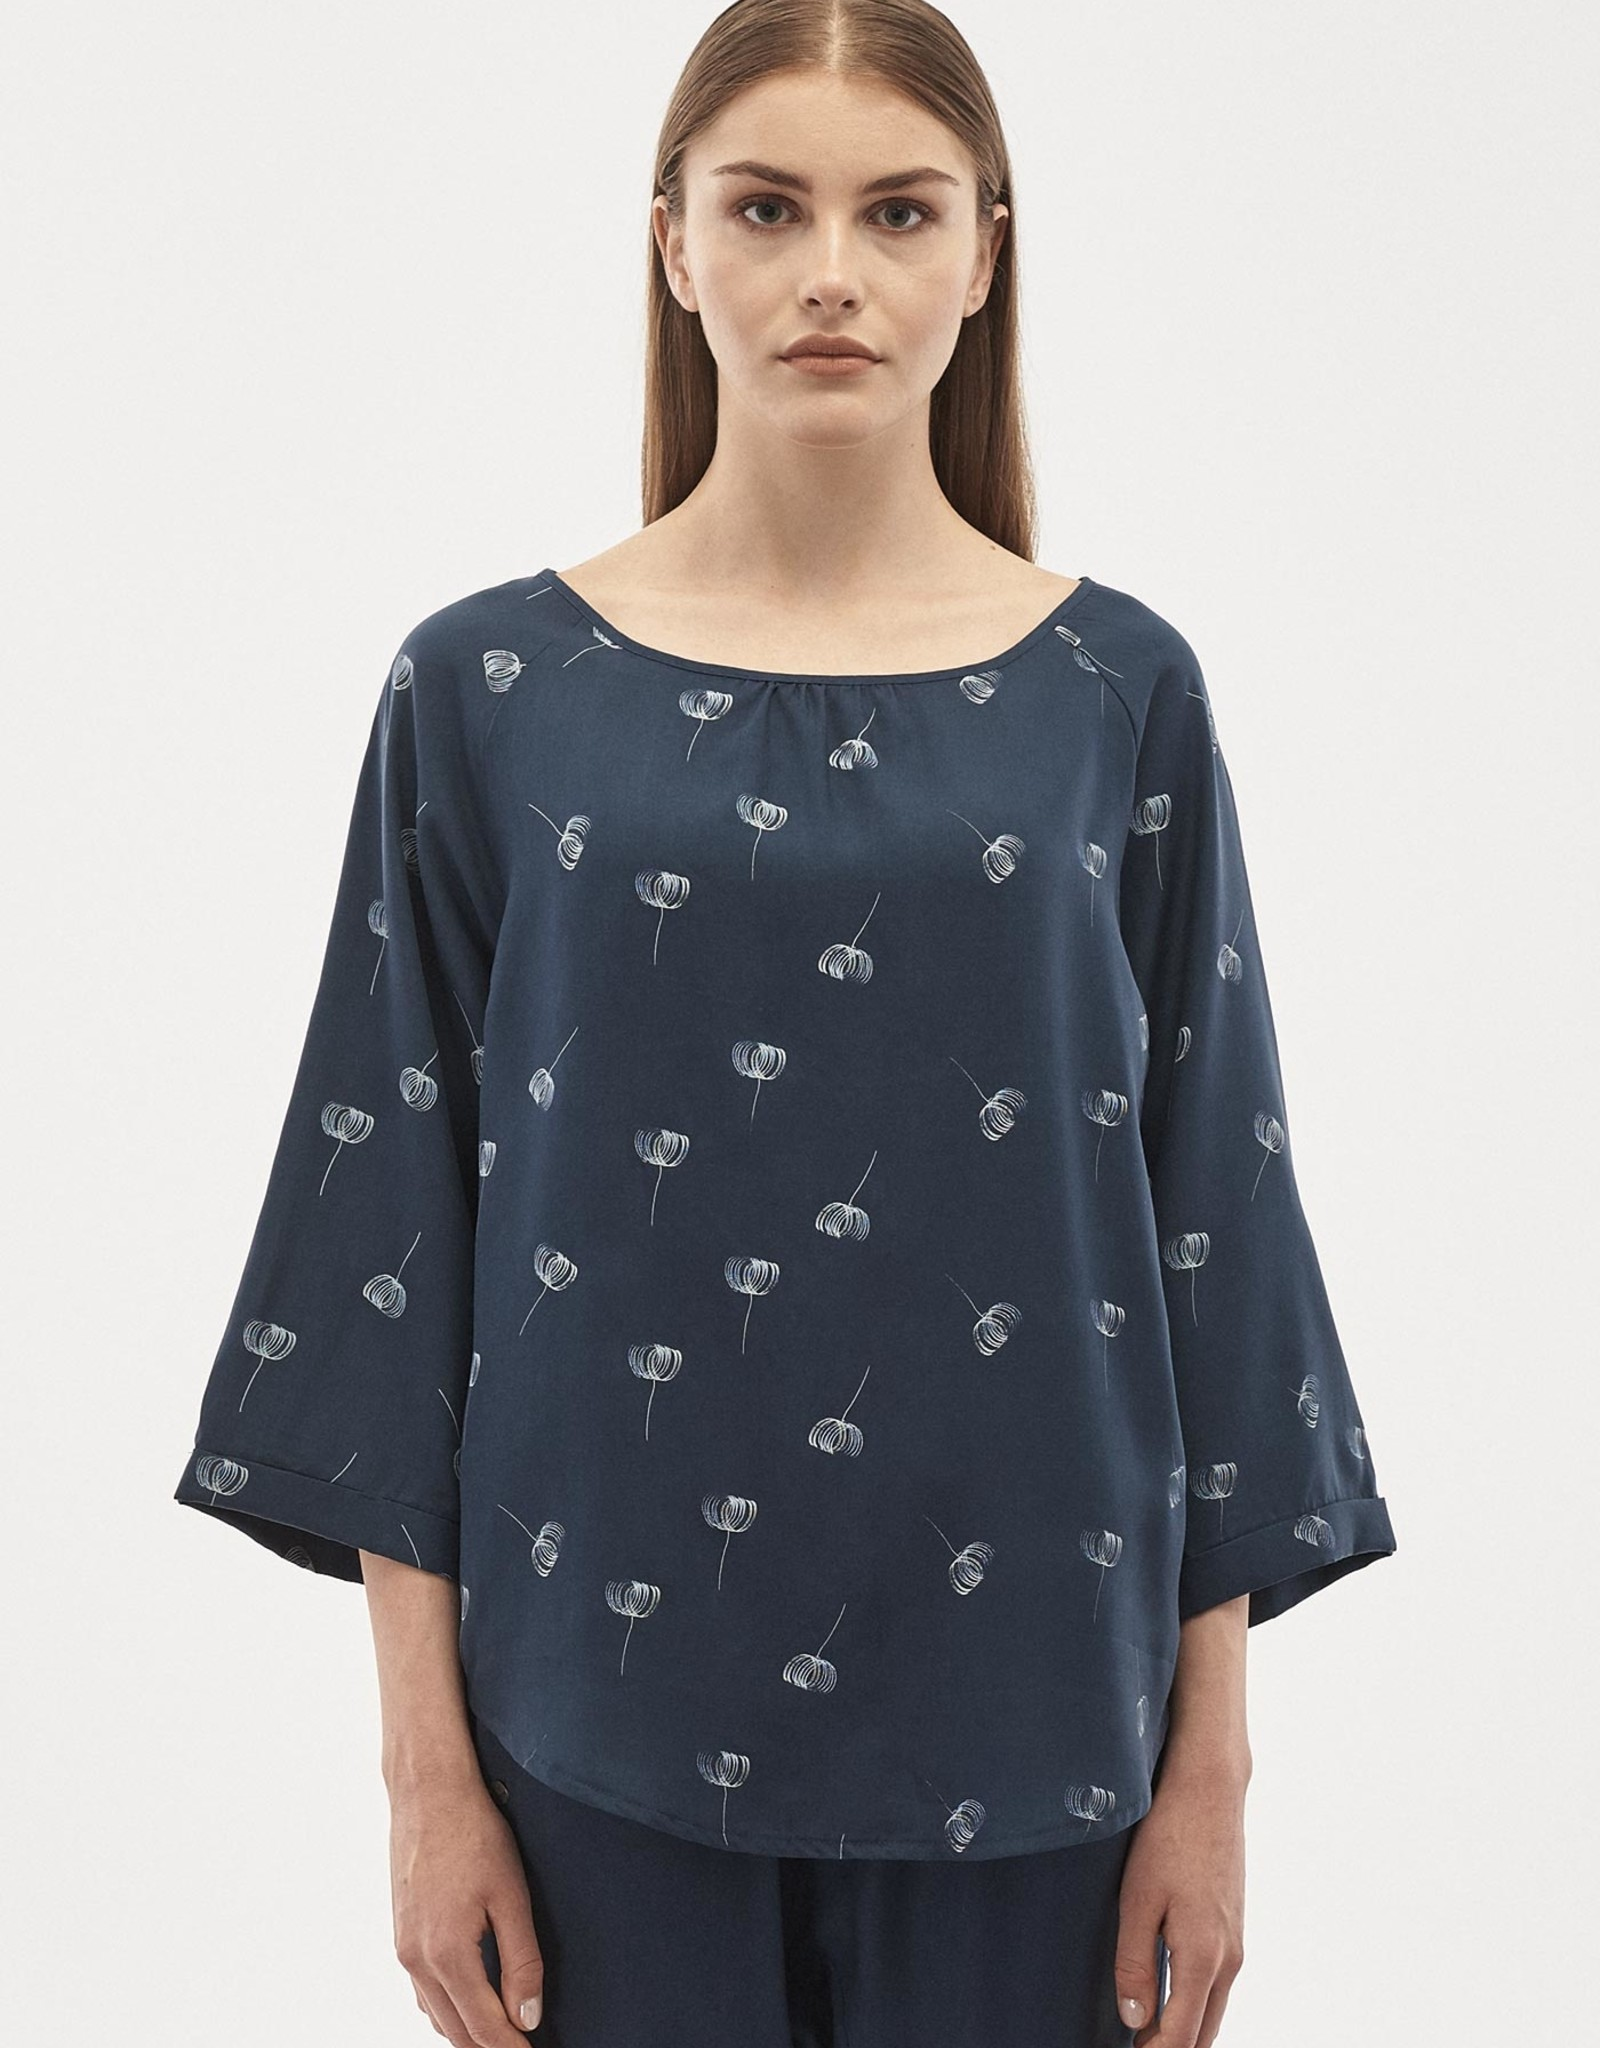 Organication BLOUSE ALLOVER PRINT WIDE SLEEVE NAVY